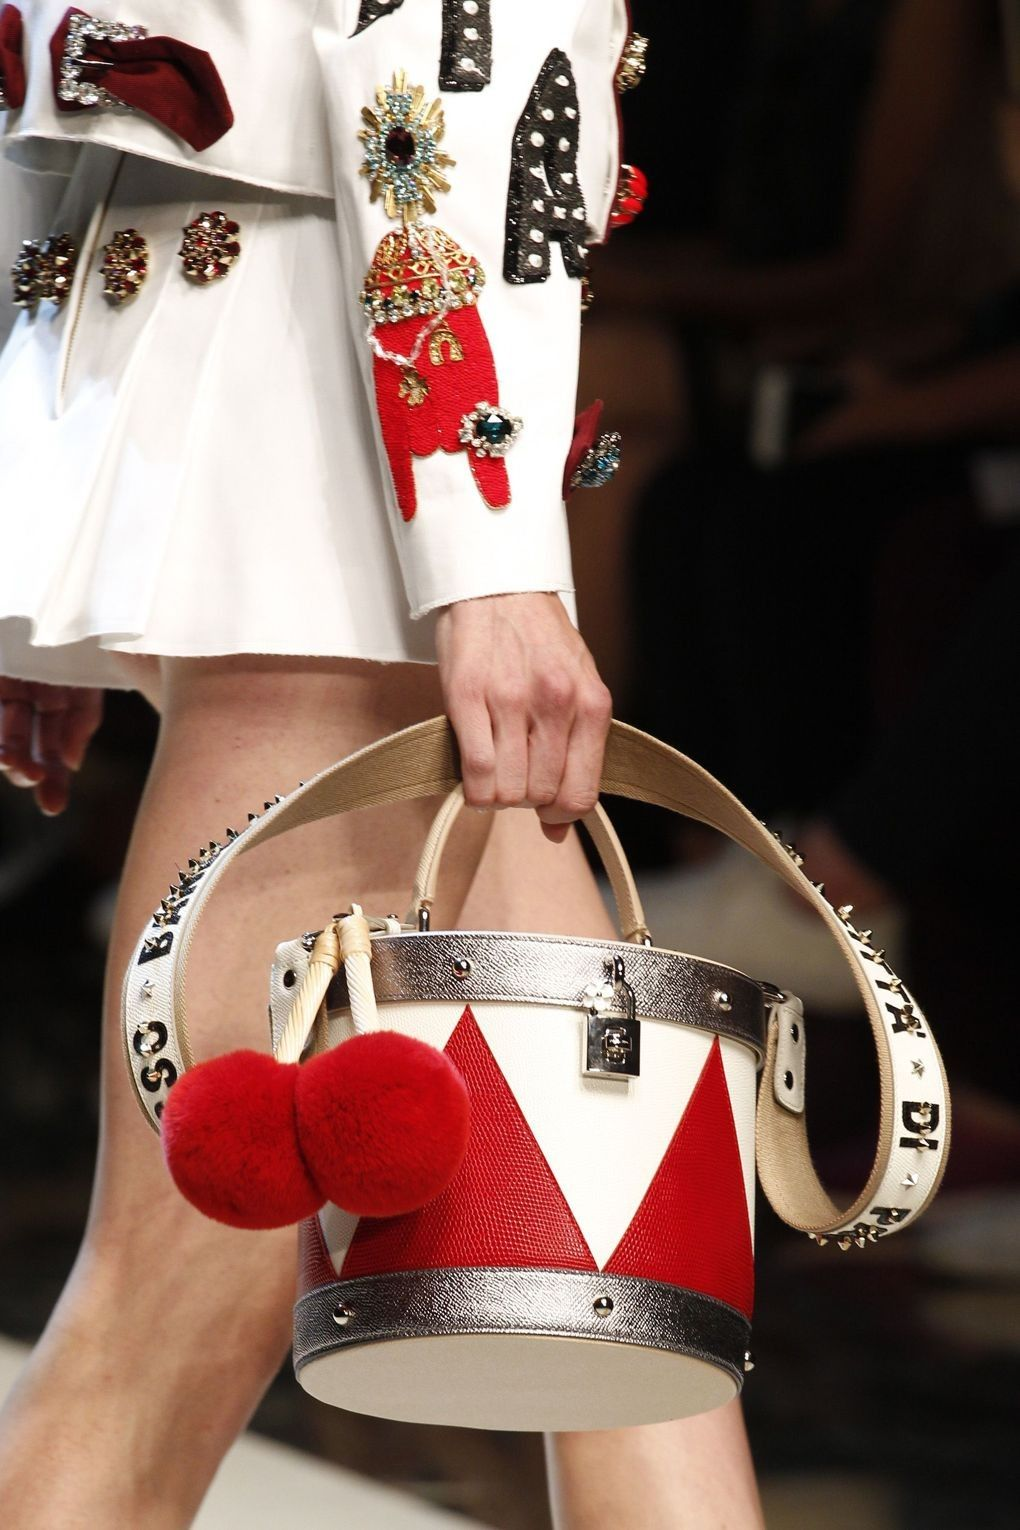 5_mix_it_up_dolce_and_gabbana_top_5_bags_of_2017_fabulous_muses